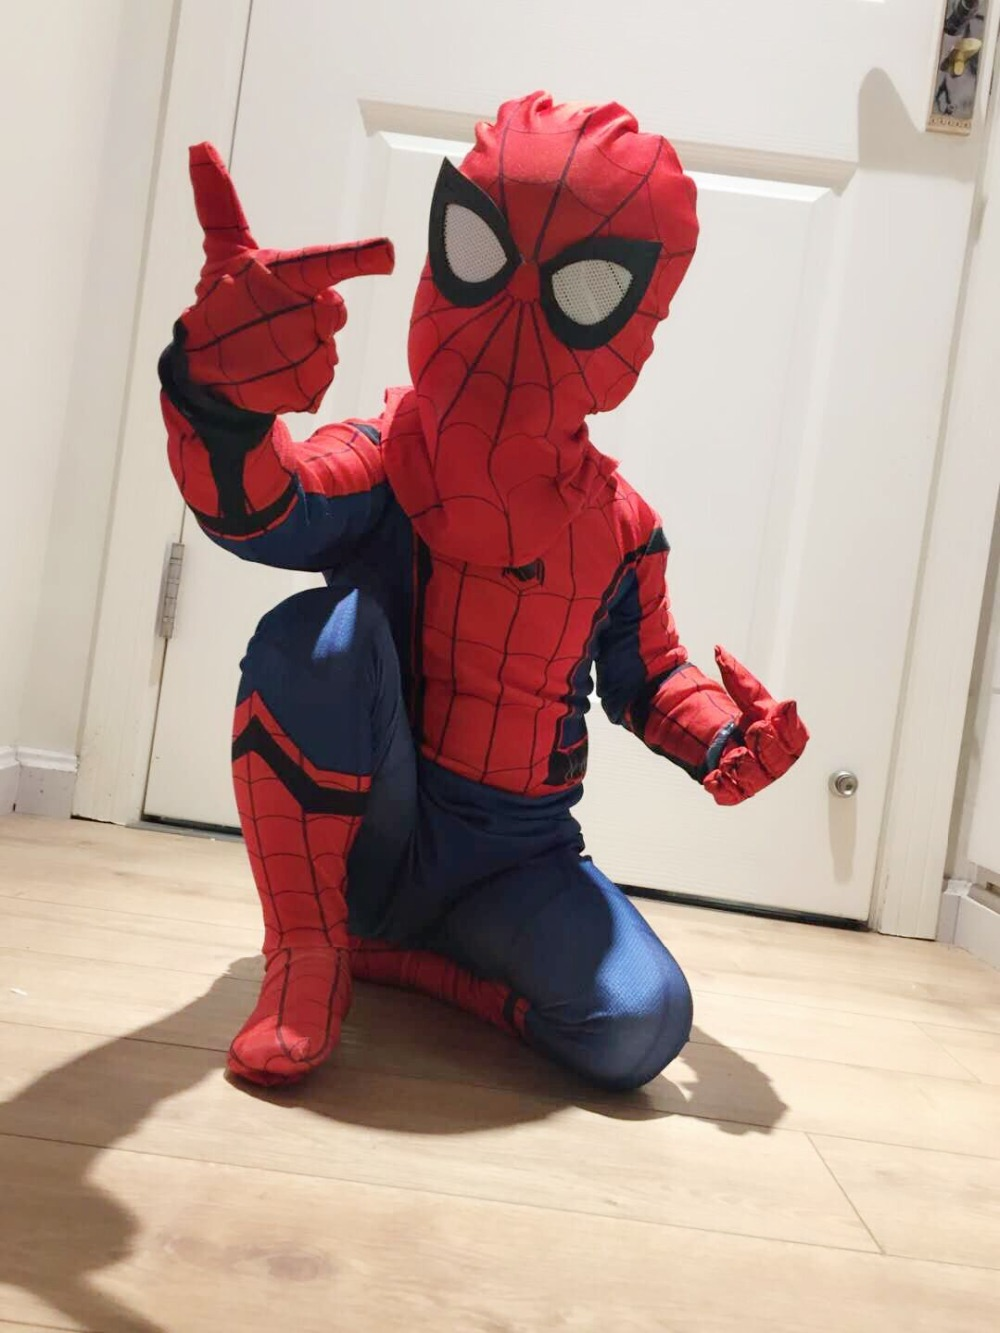 Kid Spiderman Civil War Costumes Spiderman Cosplay Spiderman mask Costume Halloween costume kid costumes for party